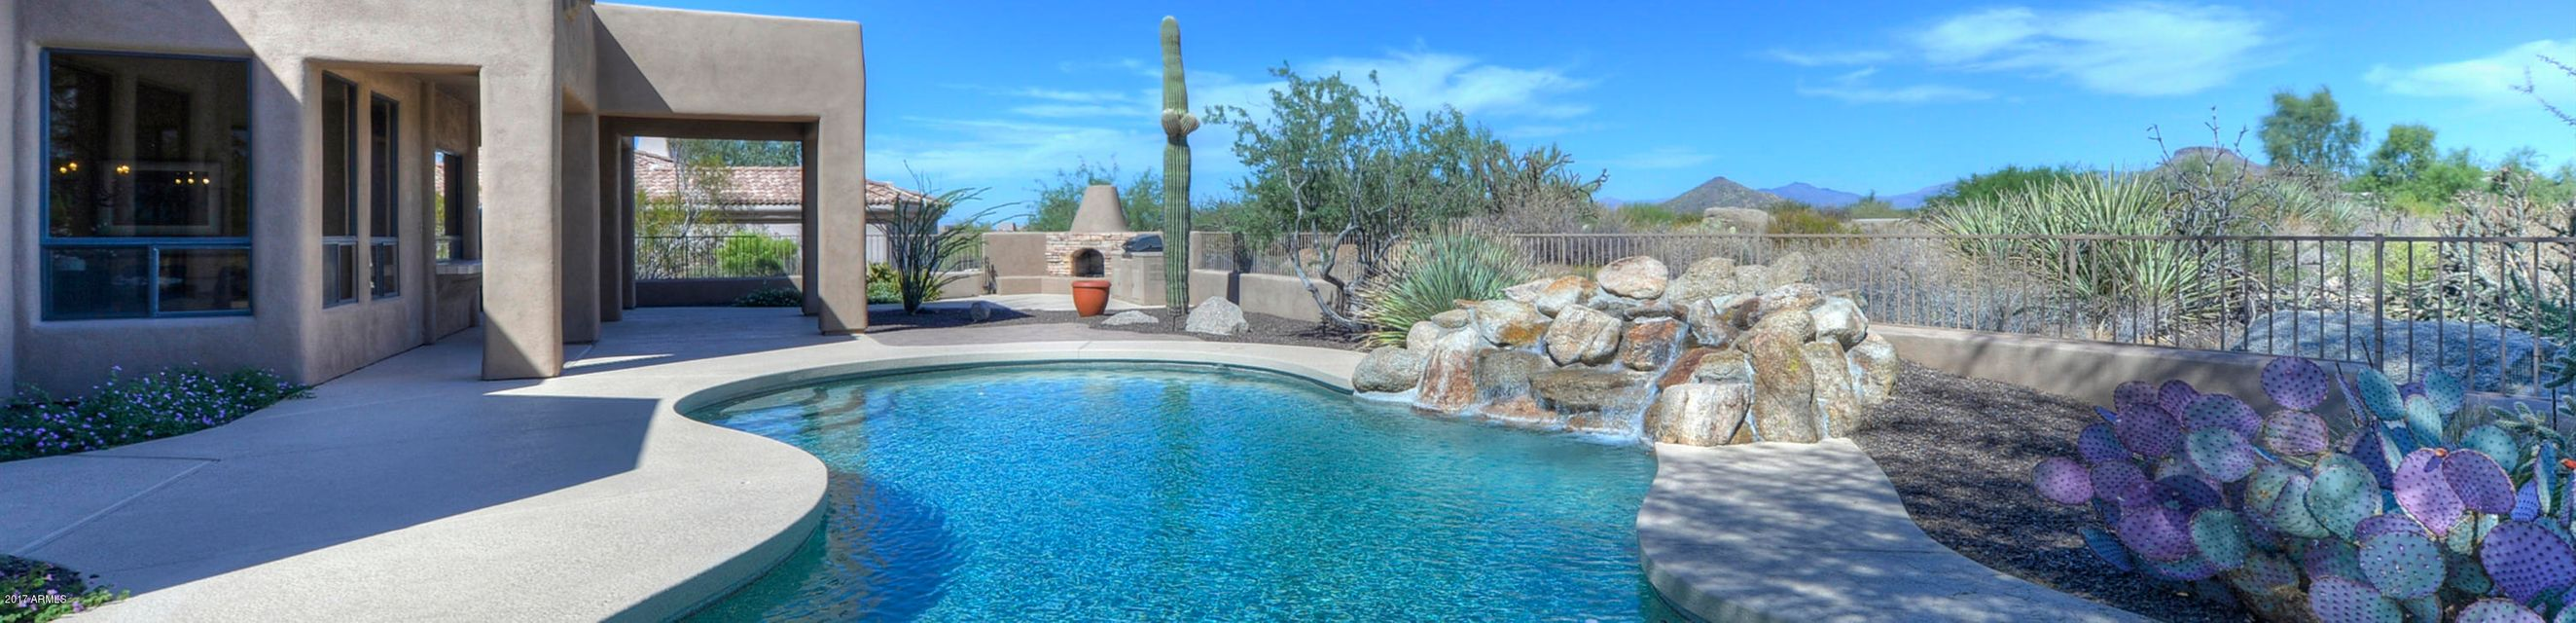 MLS 5673960 10886 E SUTHERLAND Way, Scottsdale, AZ 85262 Scottsdale AZ Candlewood Estates